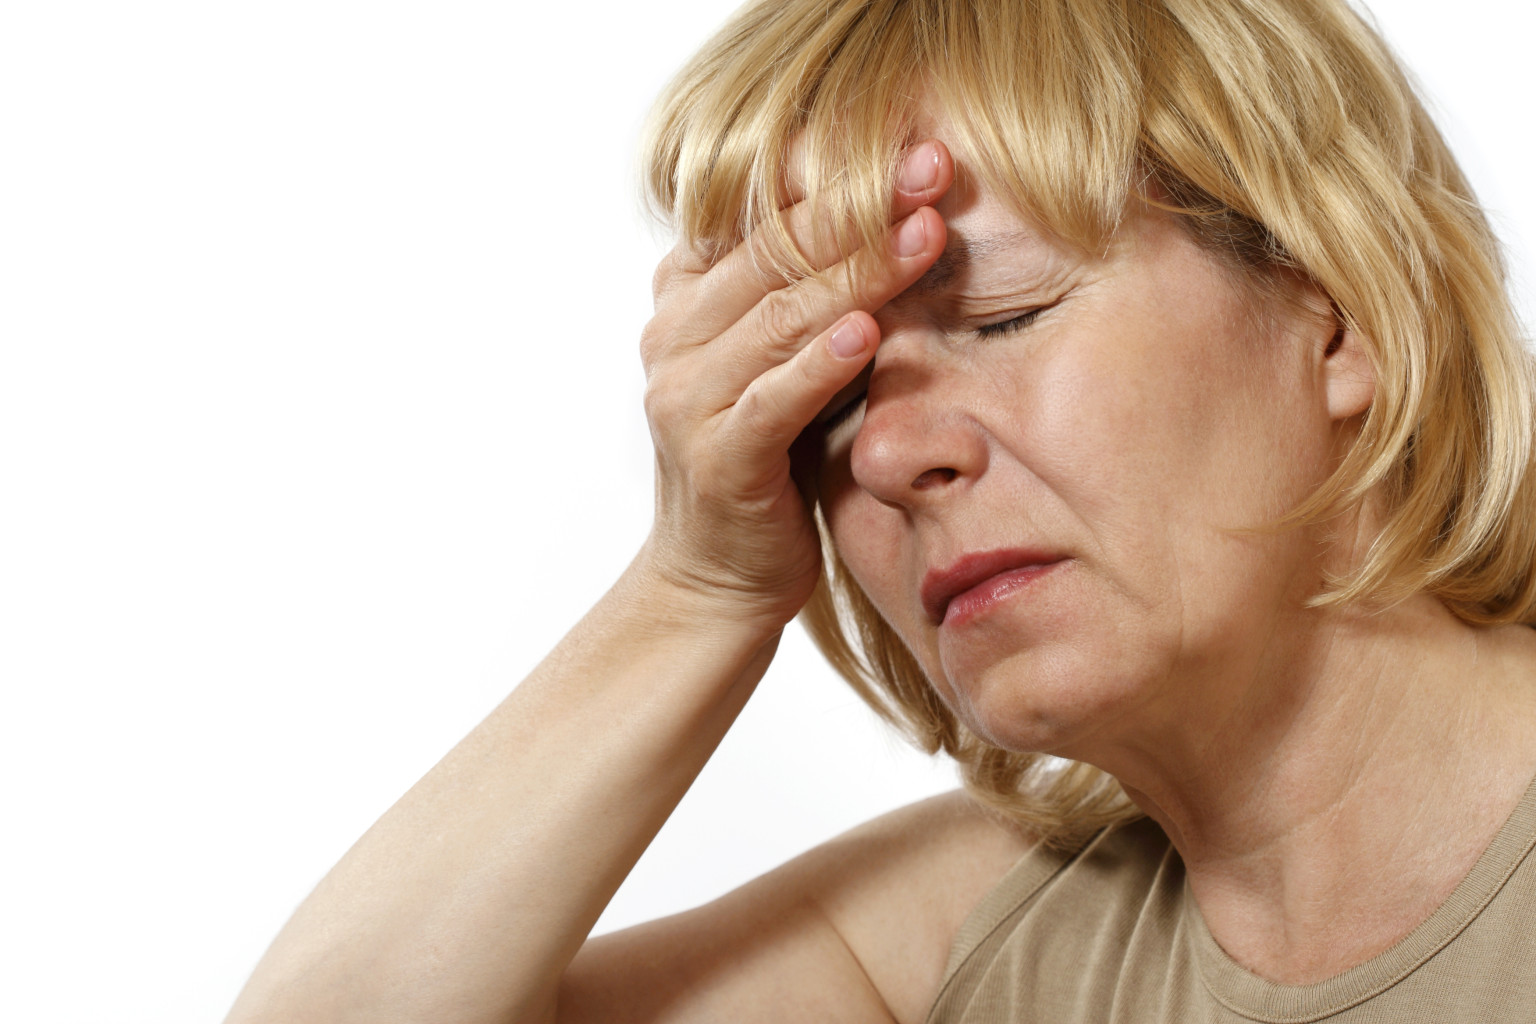 CT scan not useful in Thunderclap headache, finds study